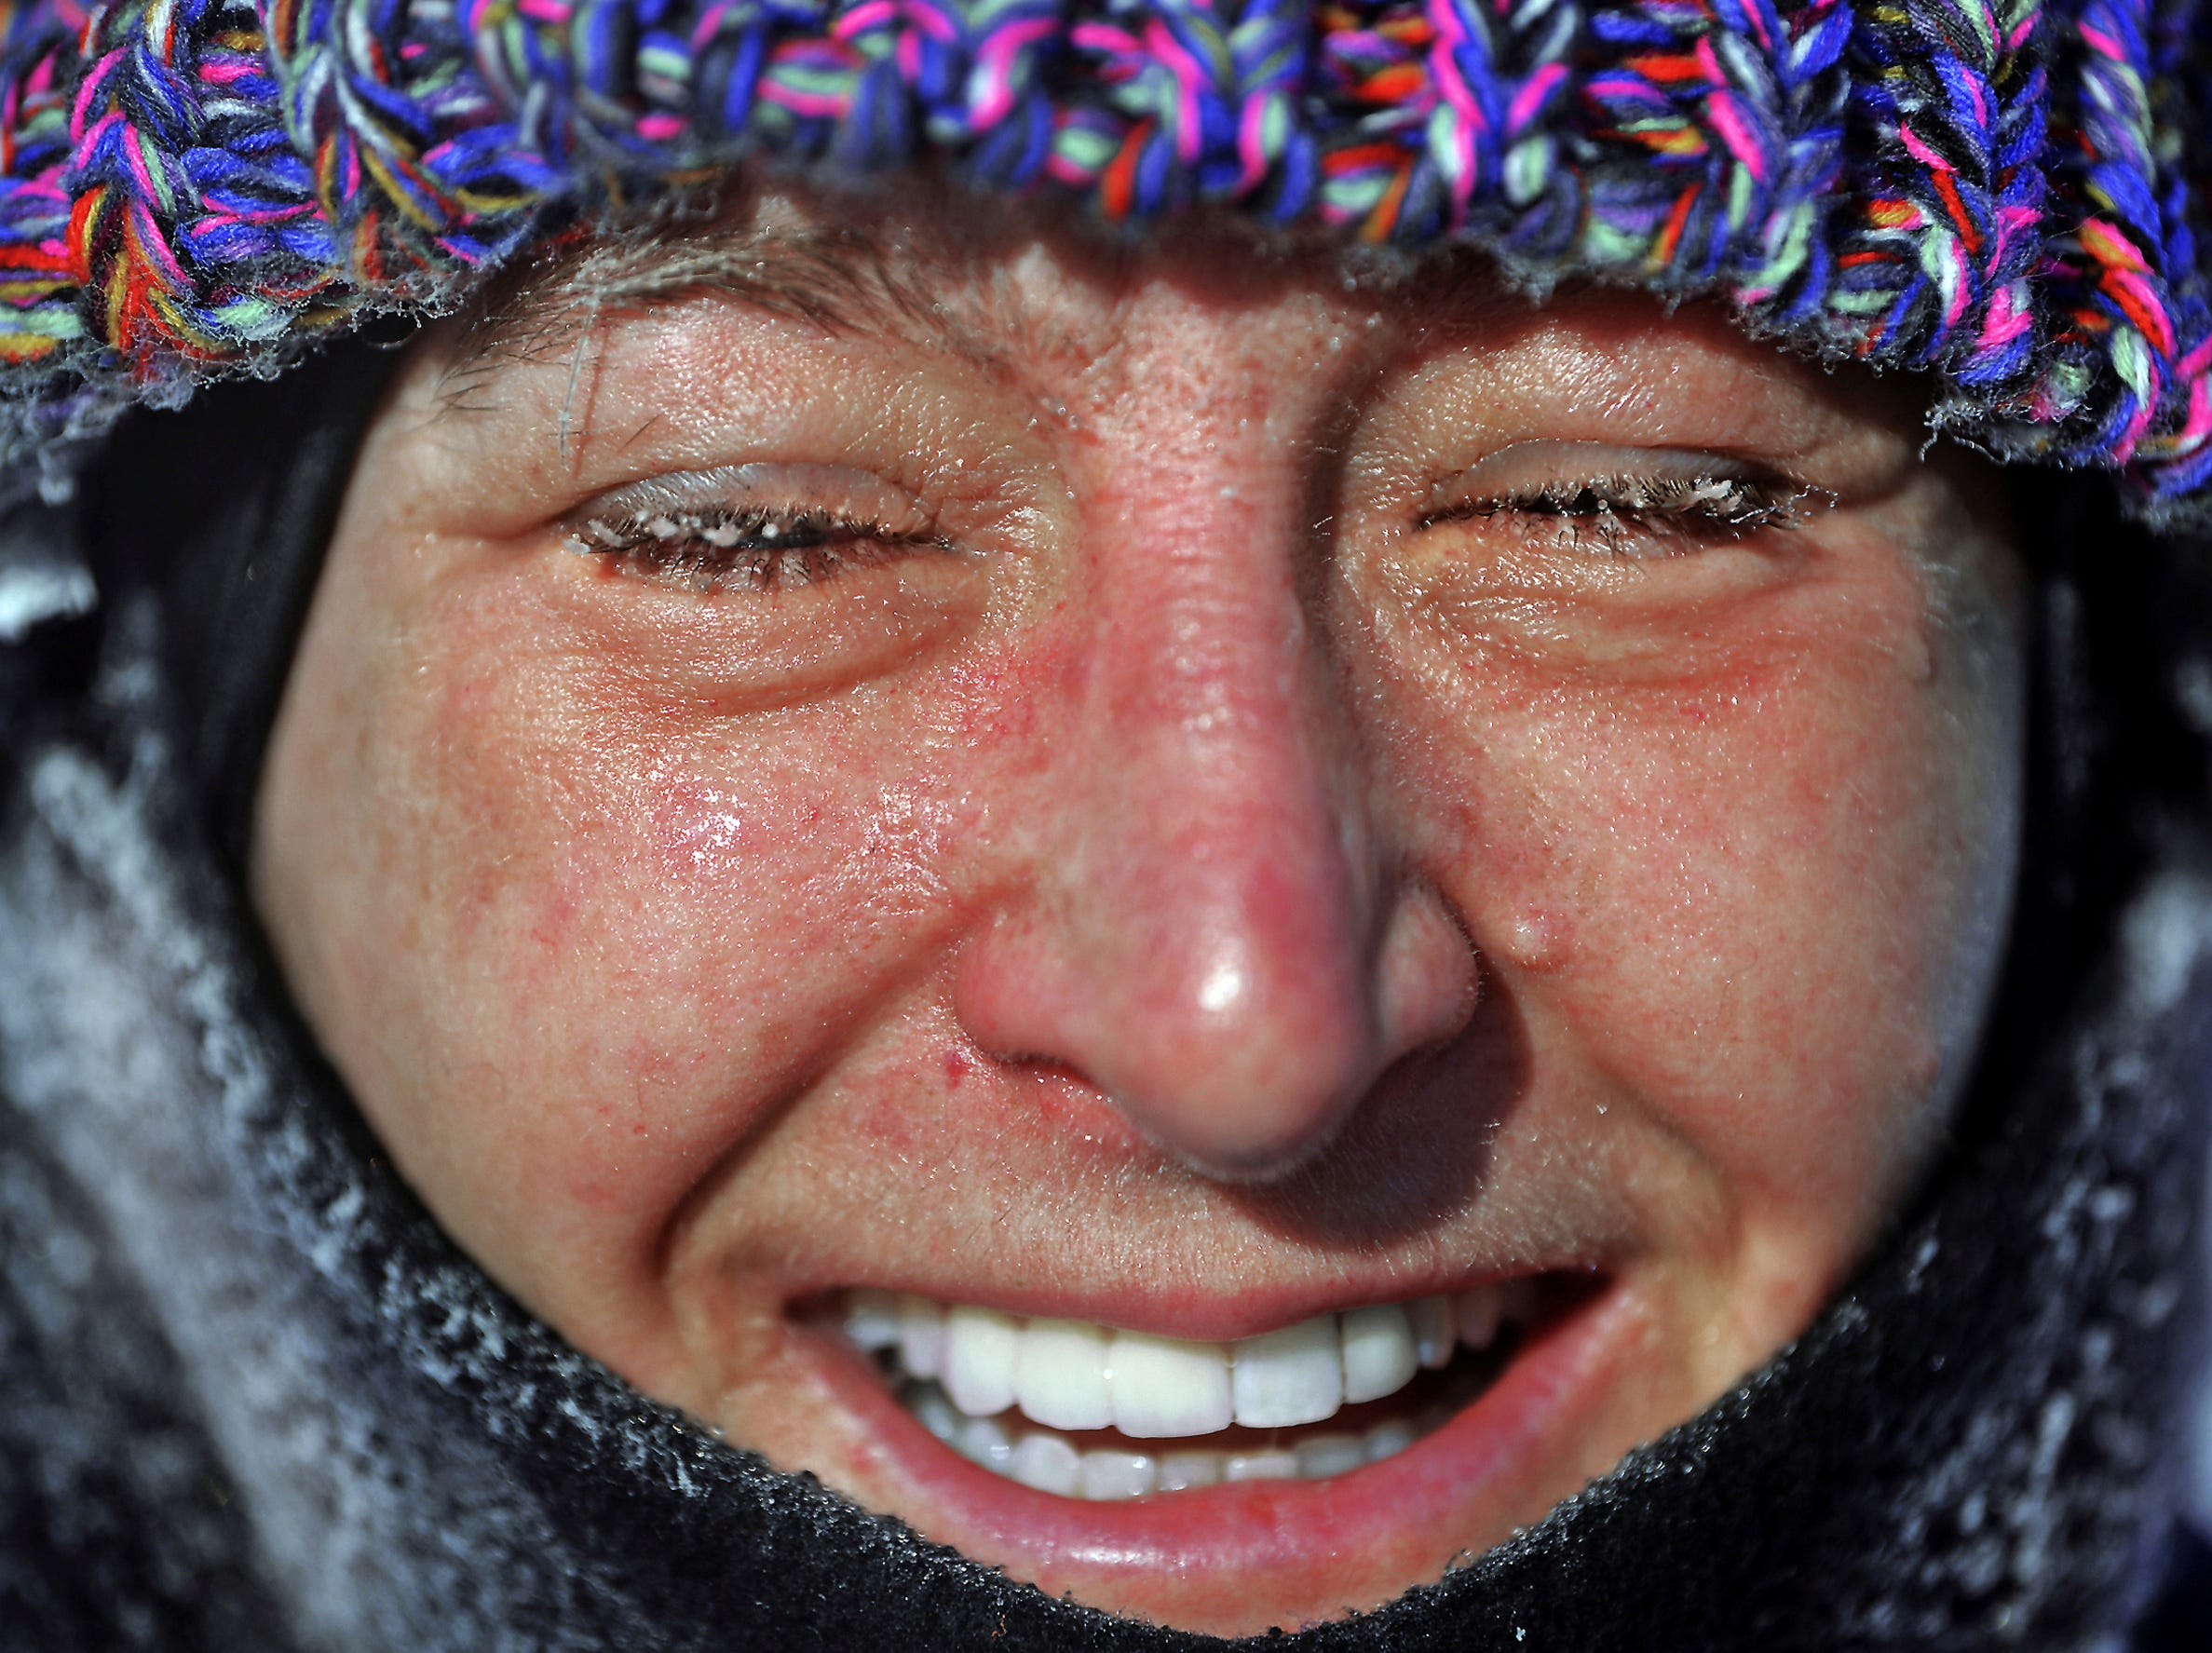 Megan Horeis, 45, of Peckville, Pa., closes her eyes, as tiny pieces of ice form on her eyelashes as she goes for a frigid morning run on Thursday, Jan. 31, 2019, in Dickson City, Pa.